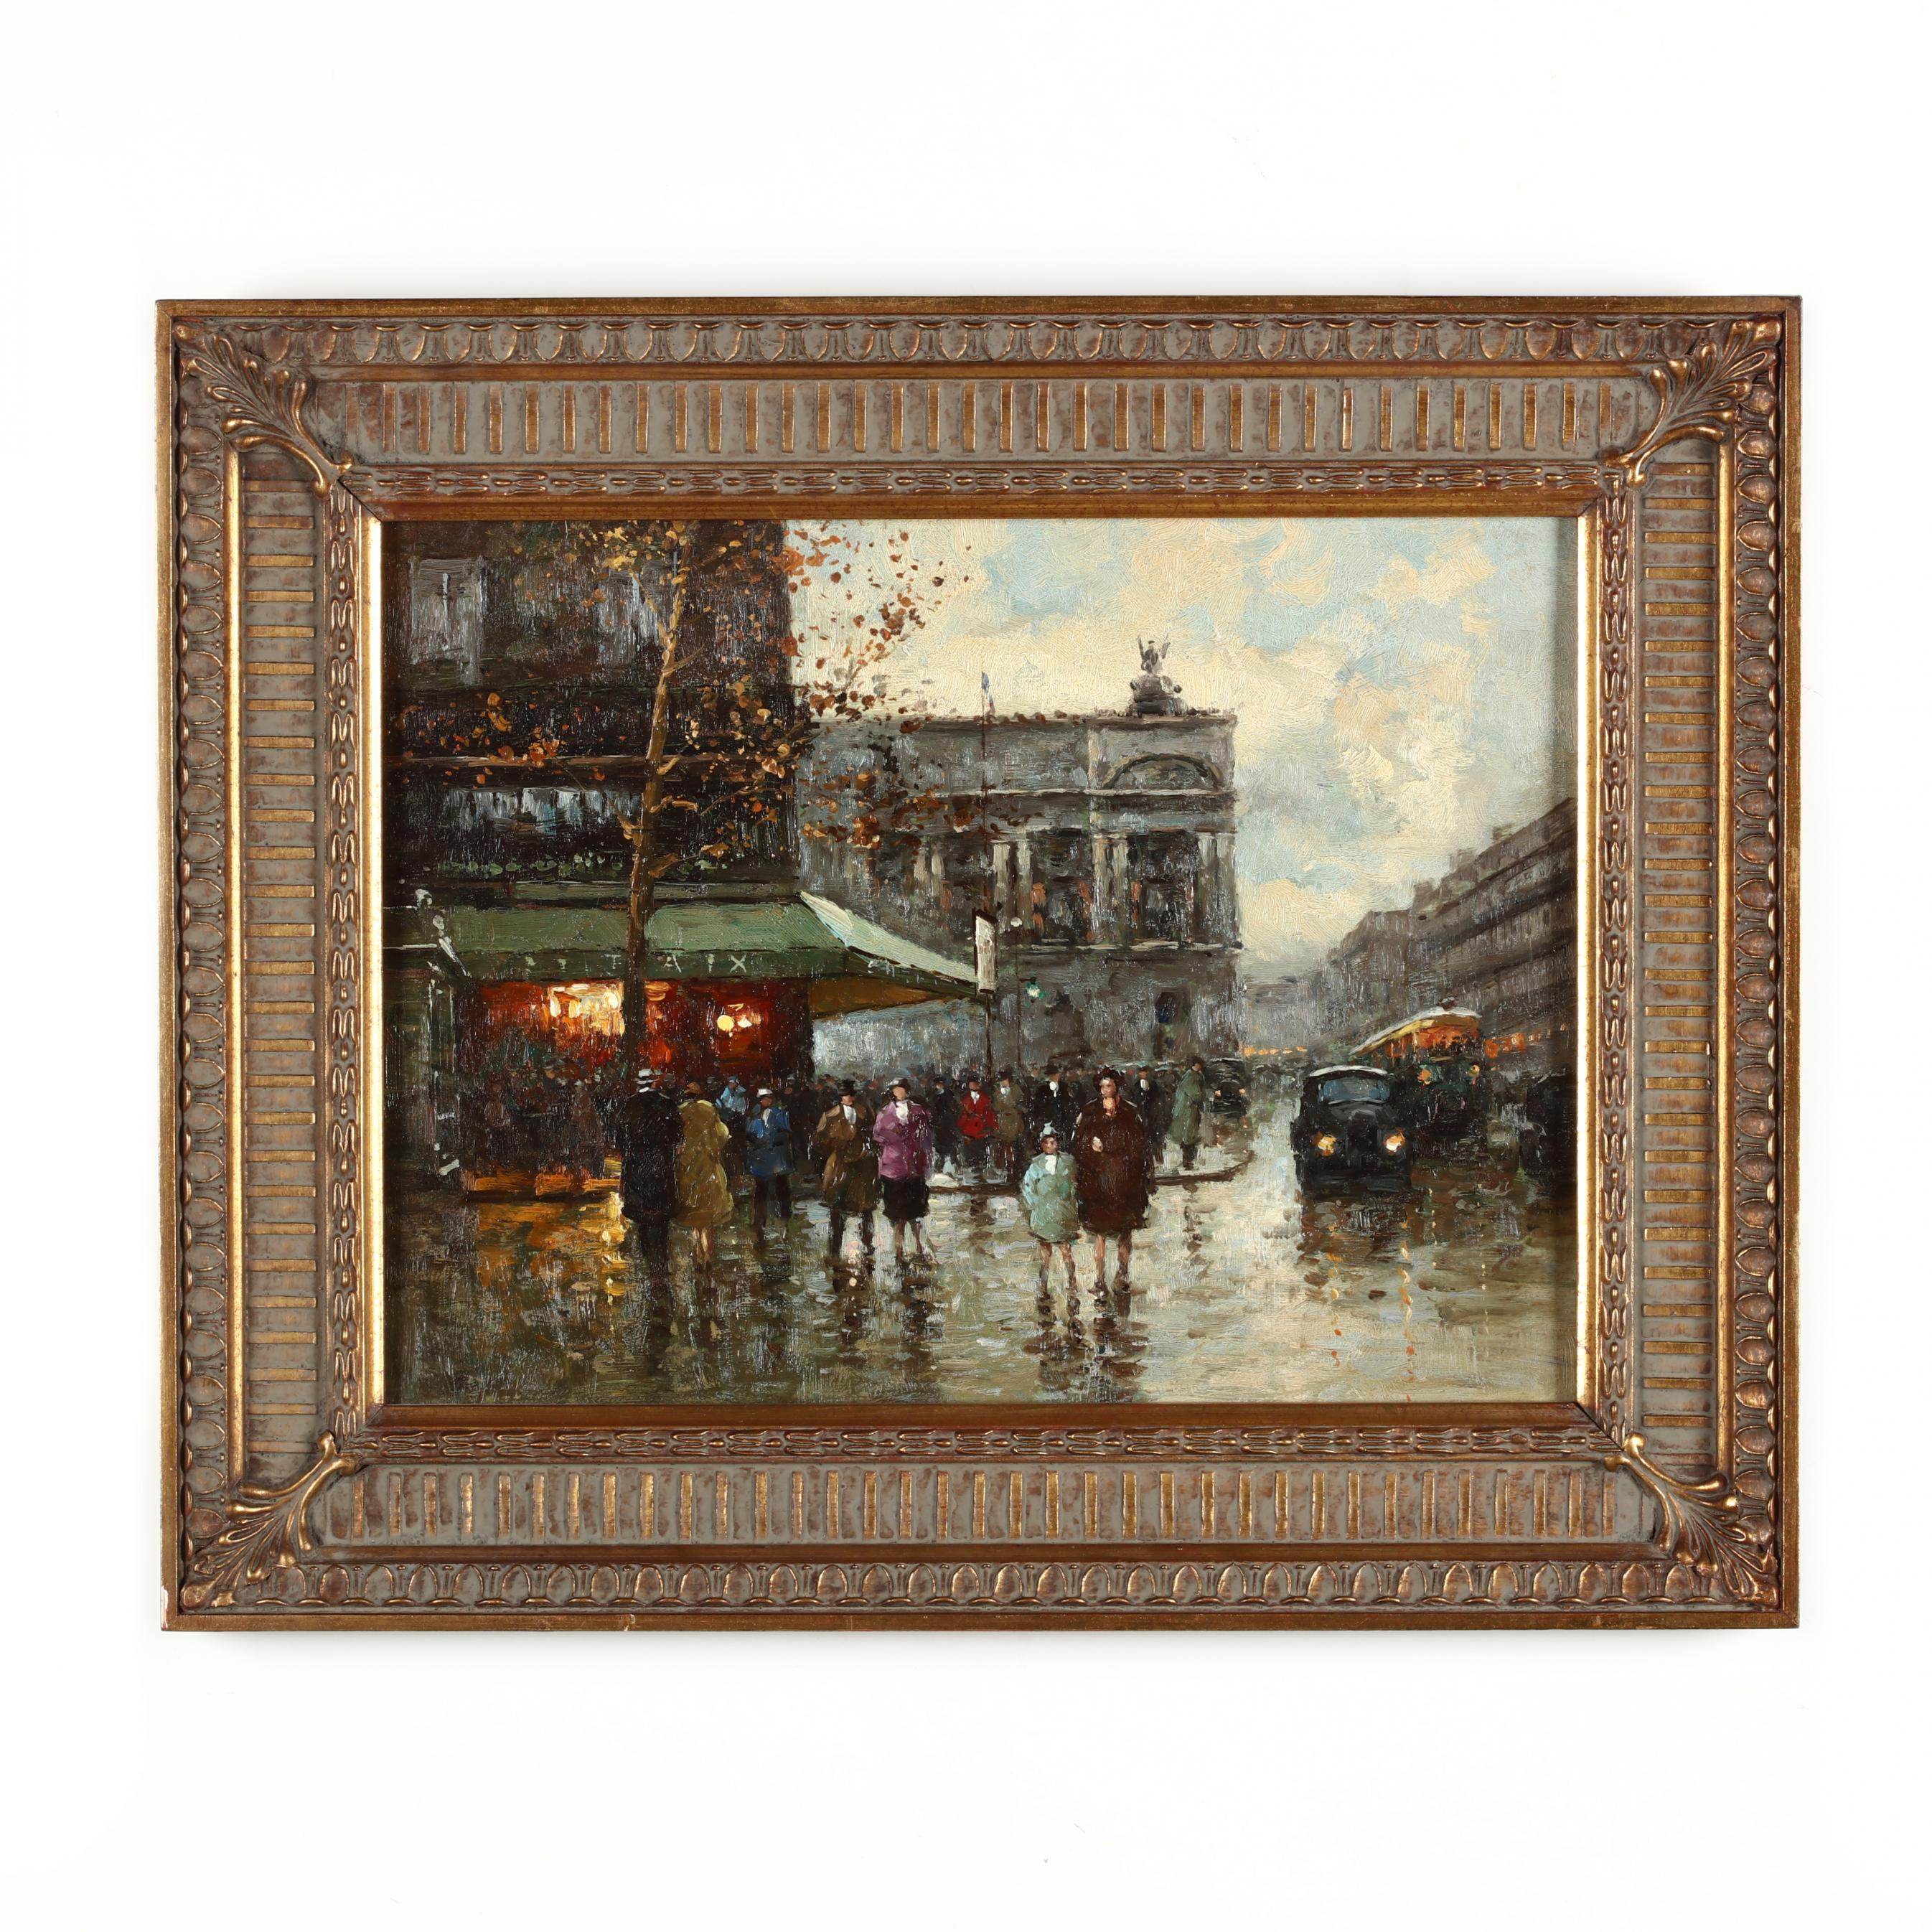 decorative-painting-of-a-parisian-street-scene